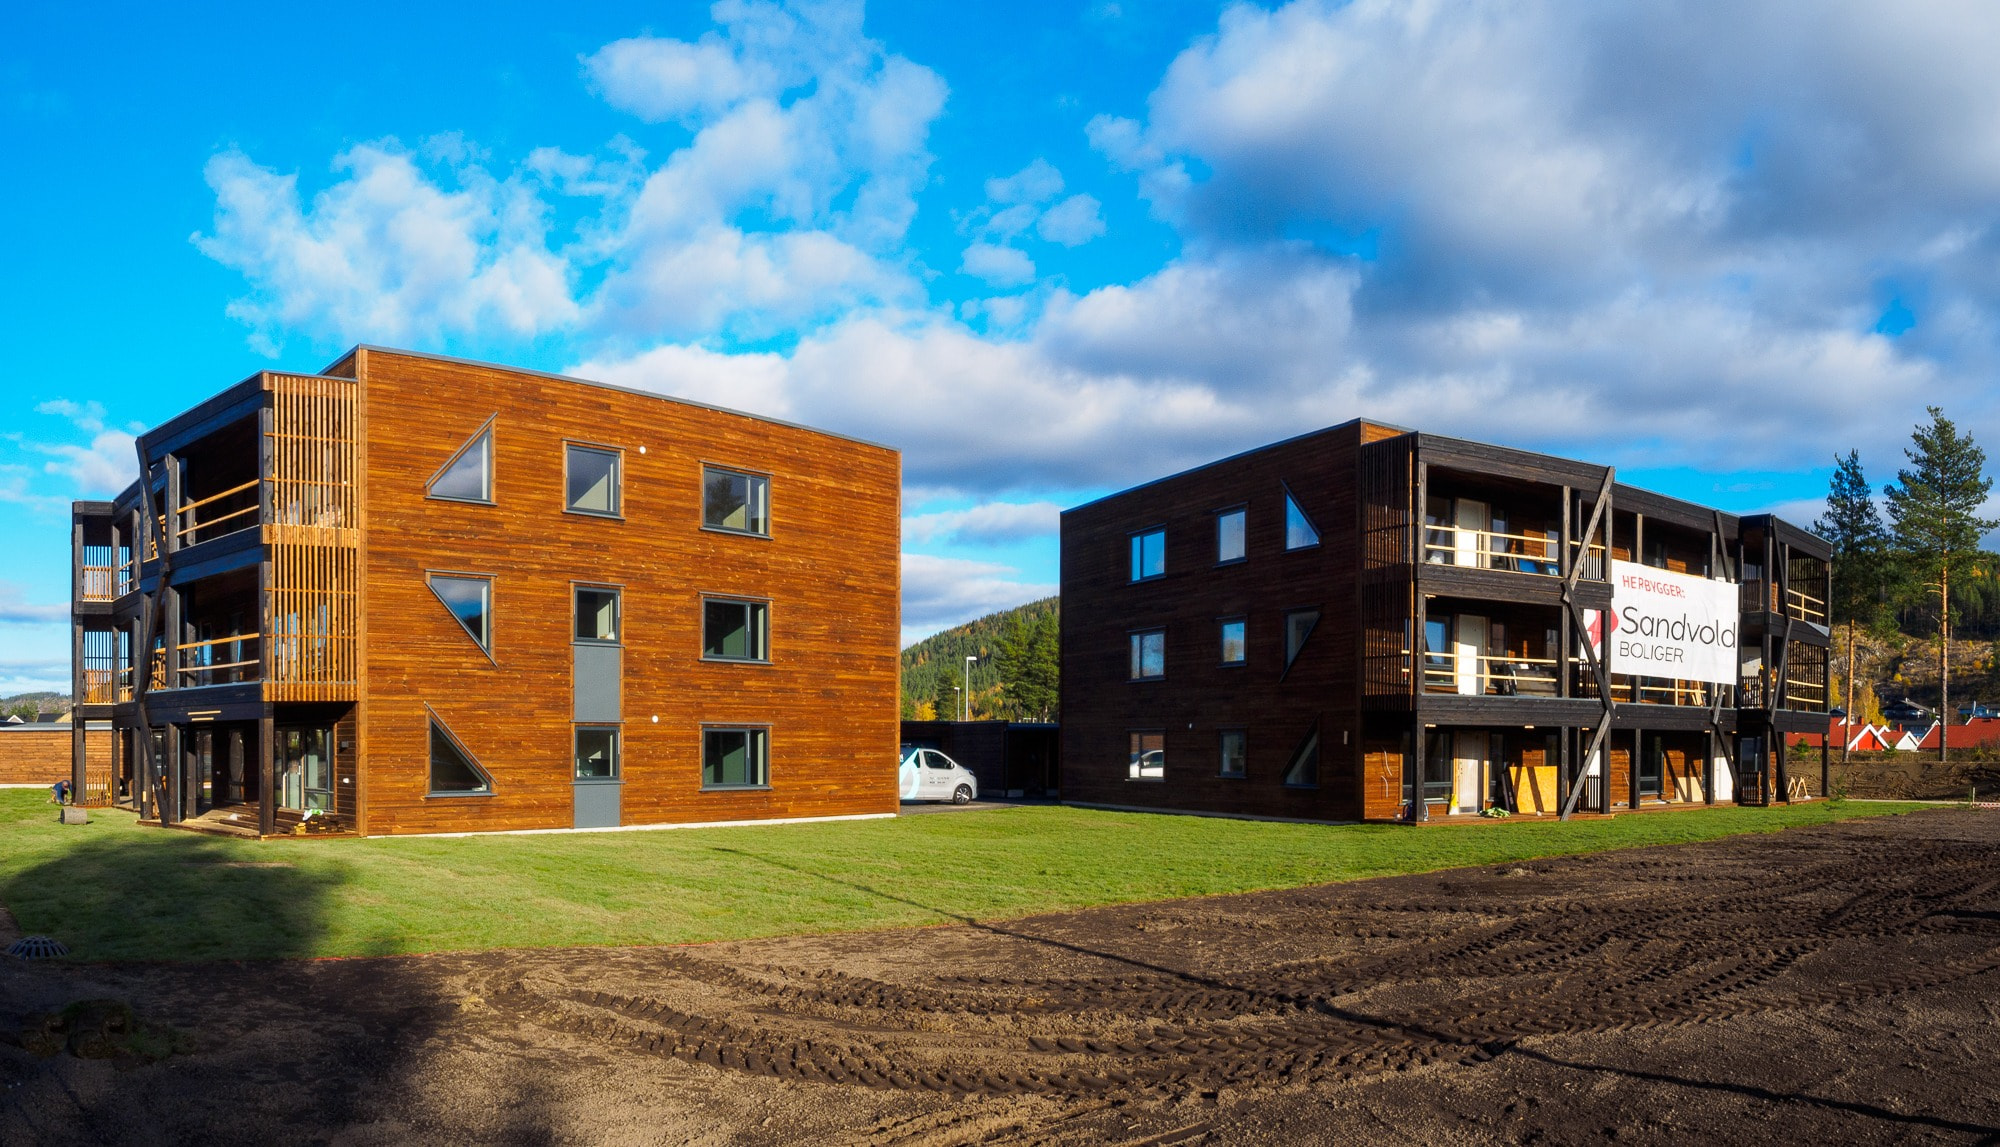 Residential area, Mixed-use, House, Building, Property, Sky, Architecture